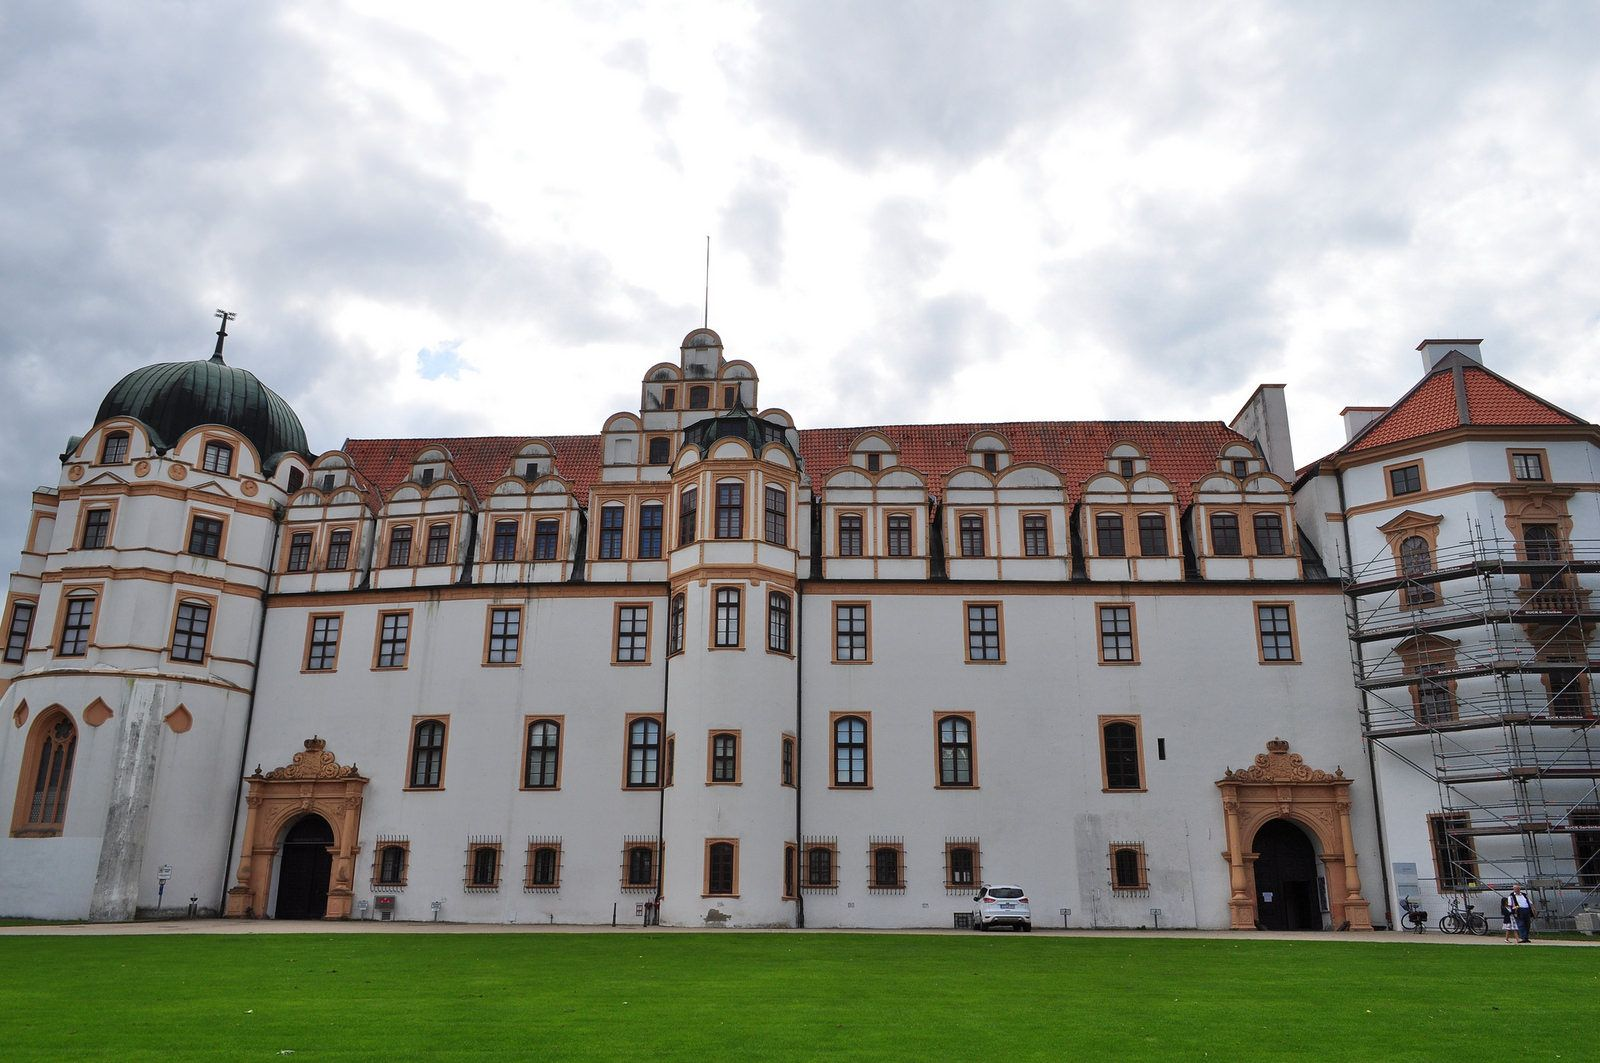 Chateau Ducal Celle Basse Saxe Republique Federale D Allemagne Castle Mansions Travel